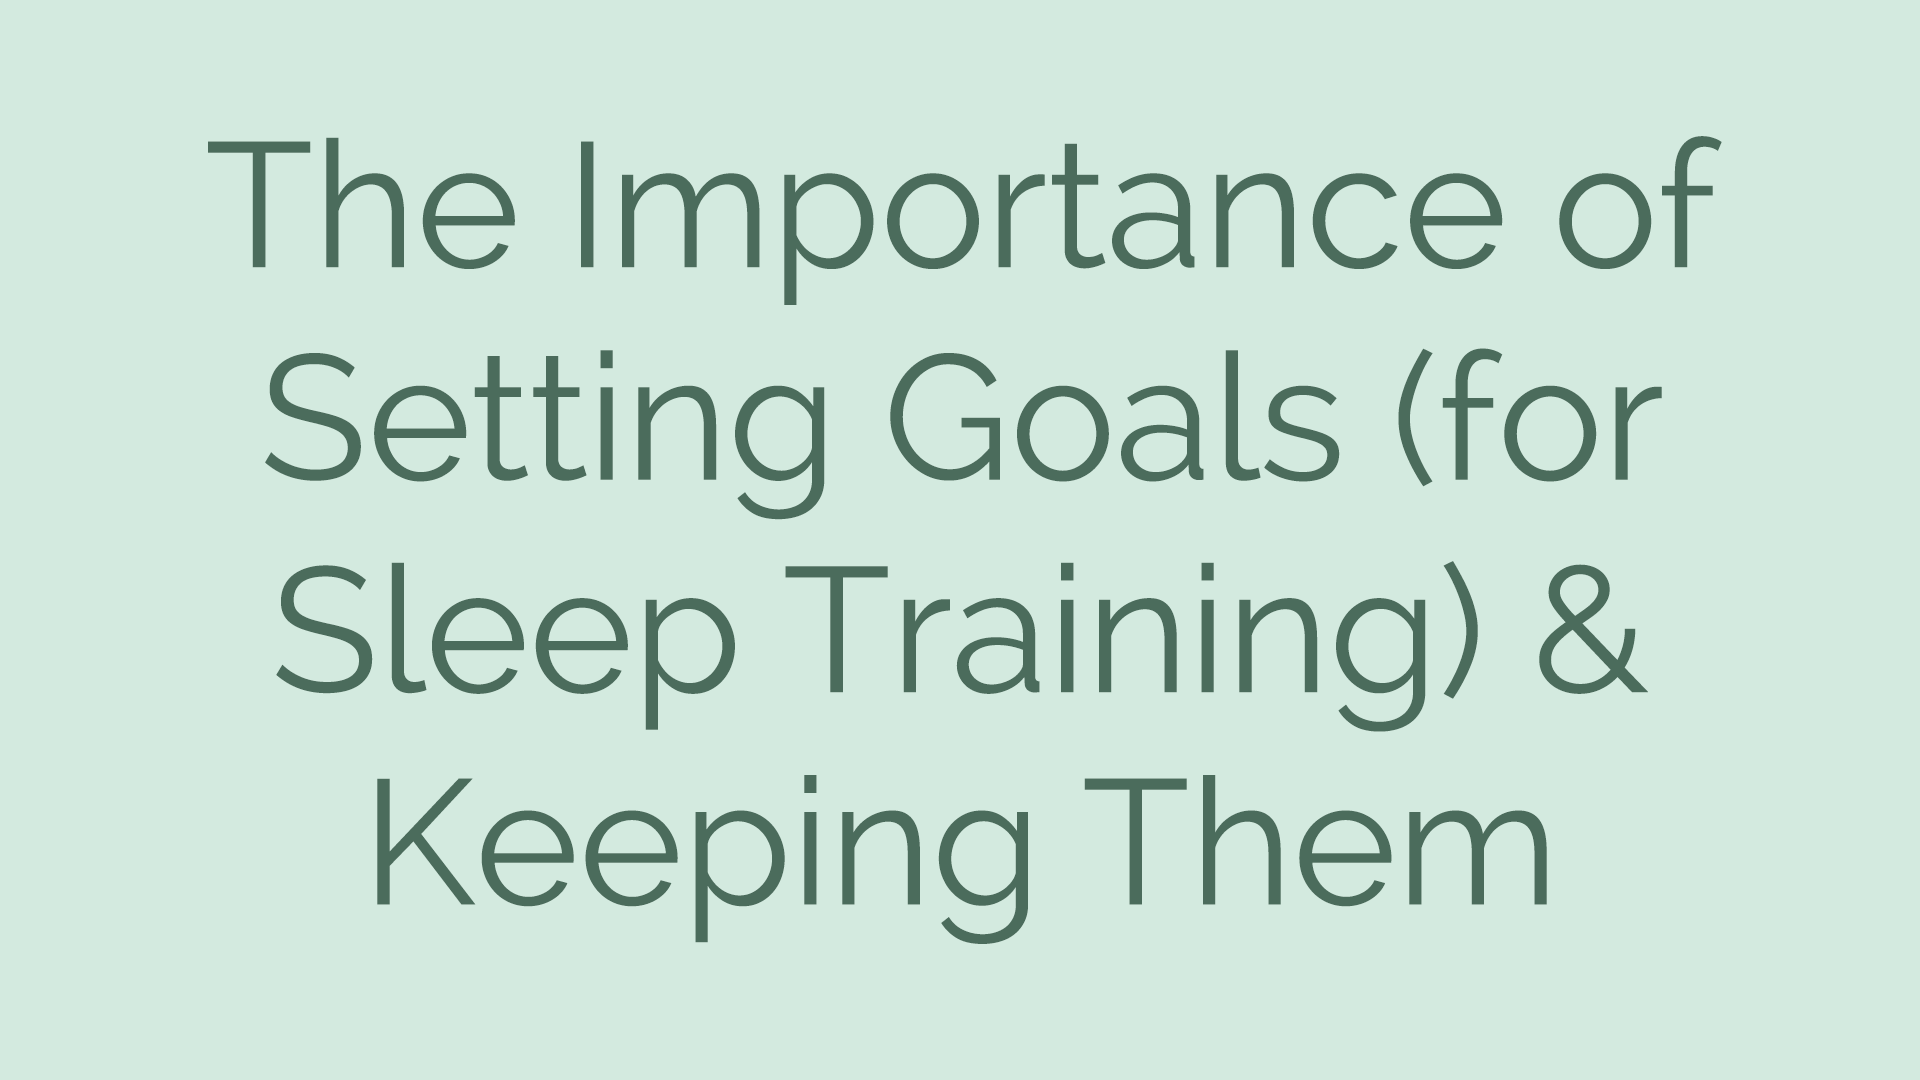 The Importance of Setting Goals (for Sleep Training) & Keeping Them